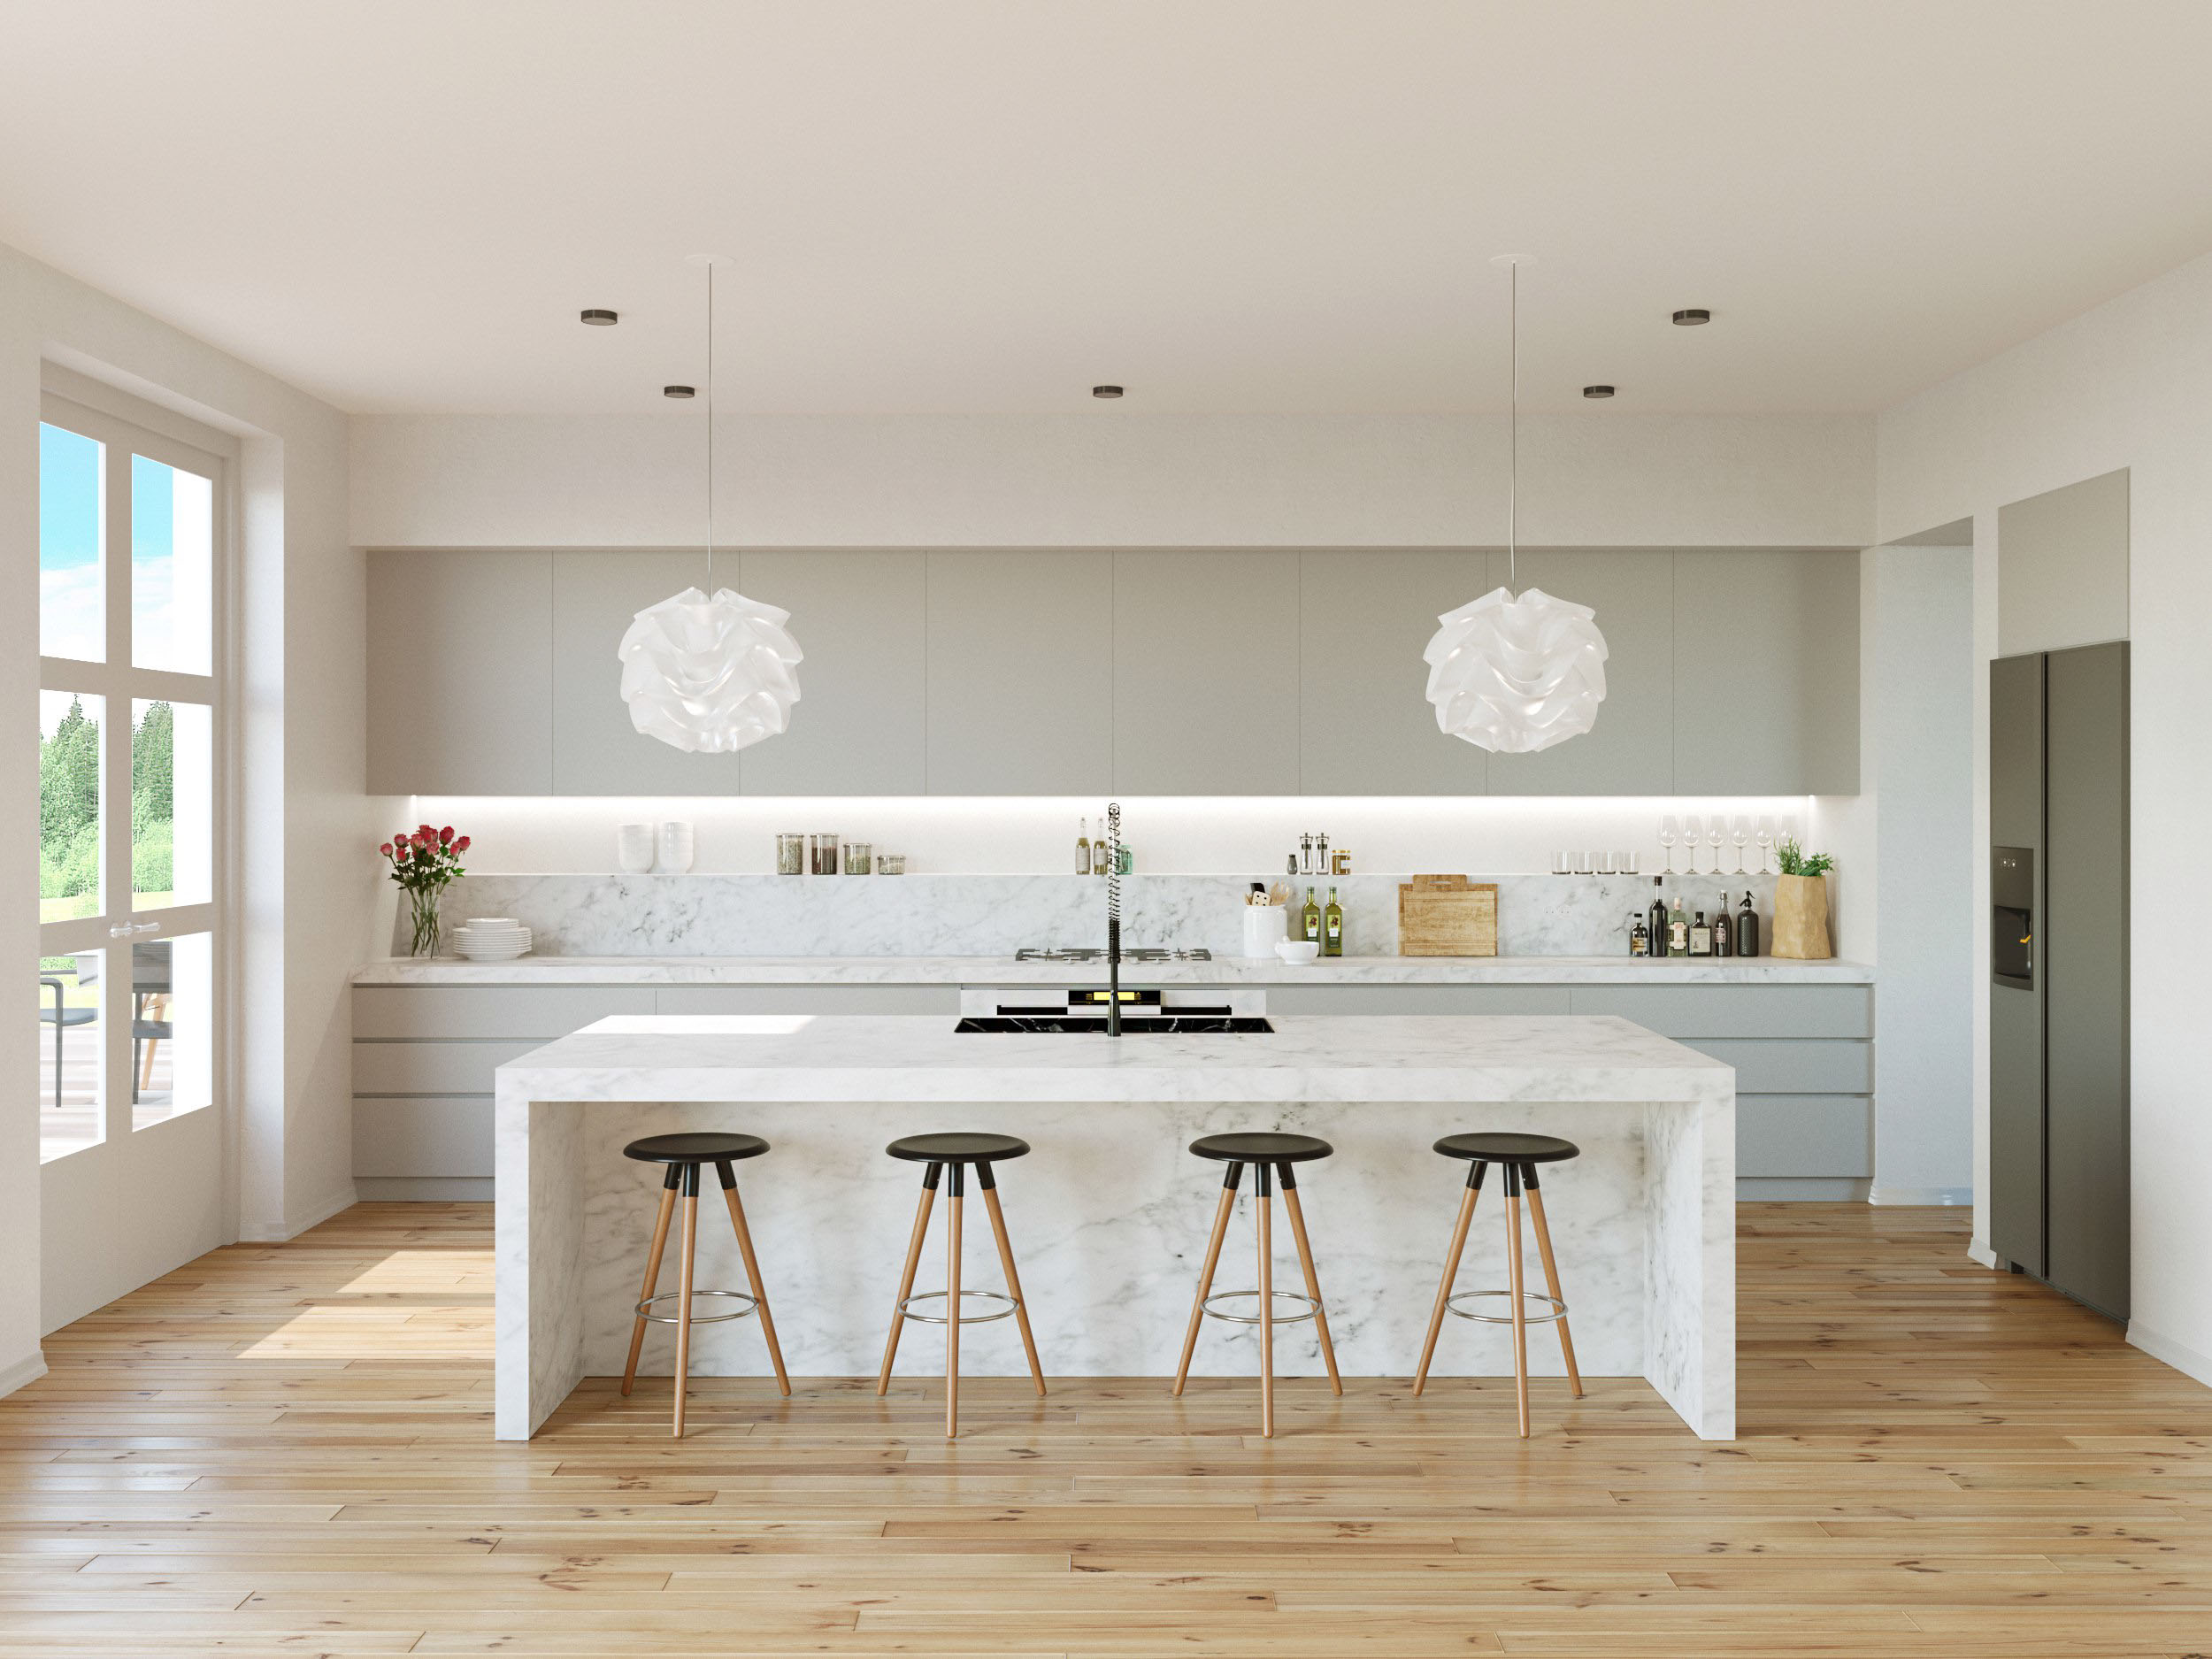 White Kitchens all white kitchen with black floor white scullery type cabinets mingle with glossy white subway tiles marble countertops and stainless steel appliances to 30 Gorgeous Grey And White Kitchens That Get Their Mix Right